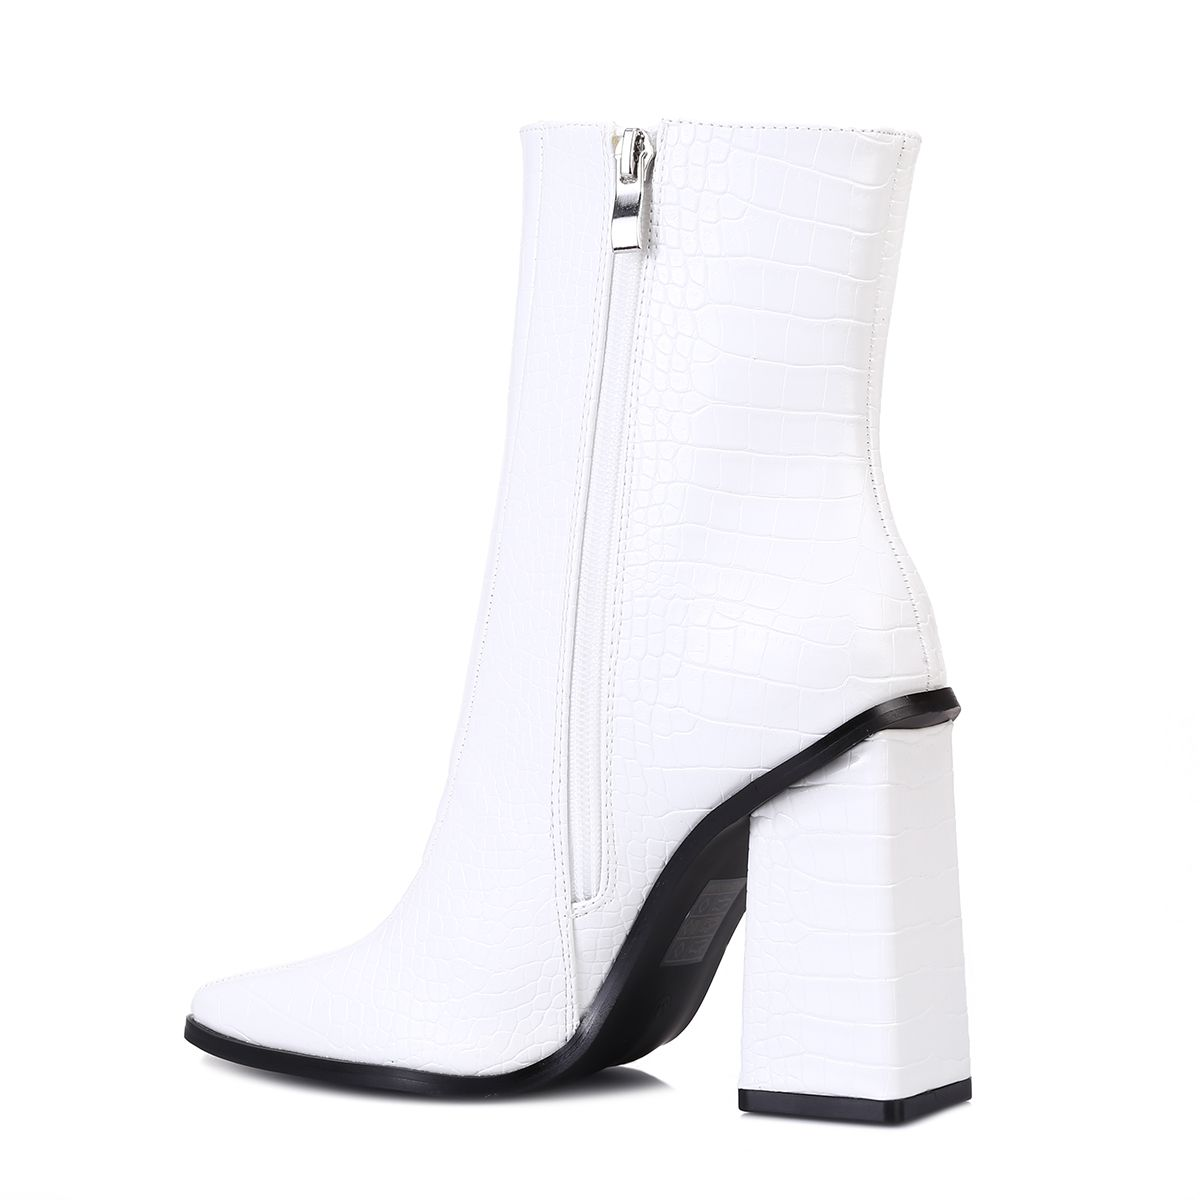 Bottines simili croco blanc à bout carré